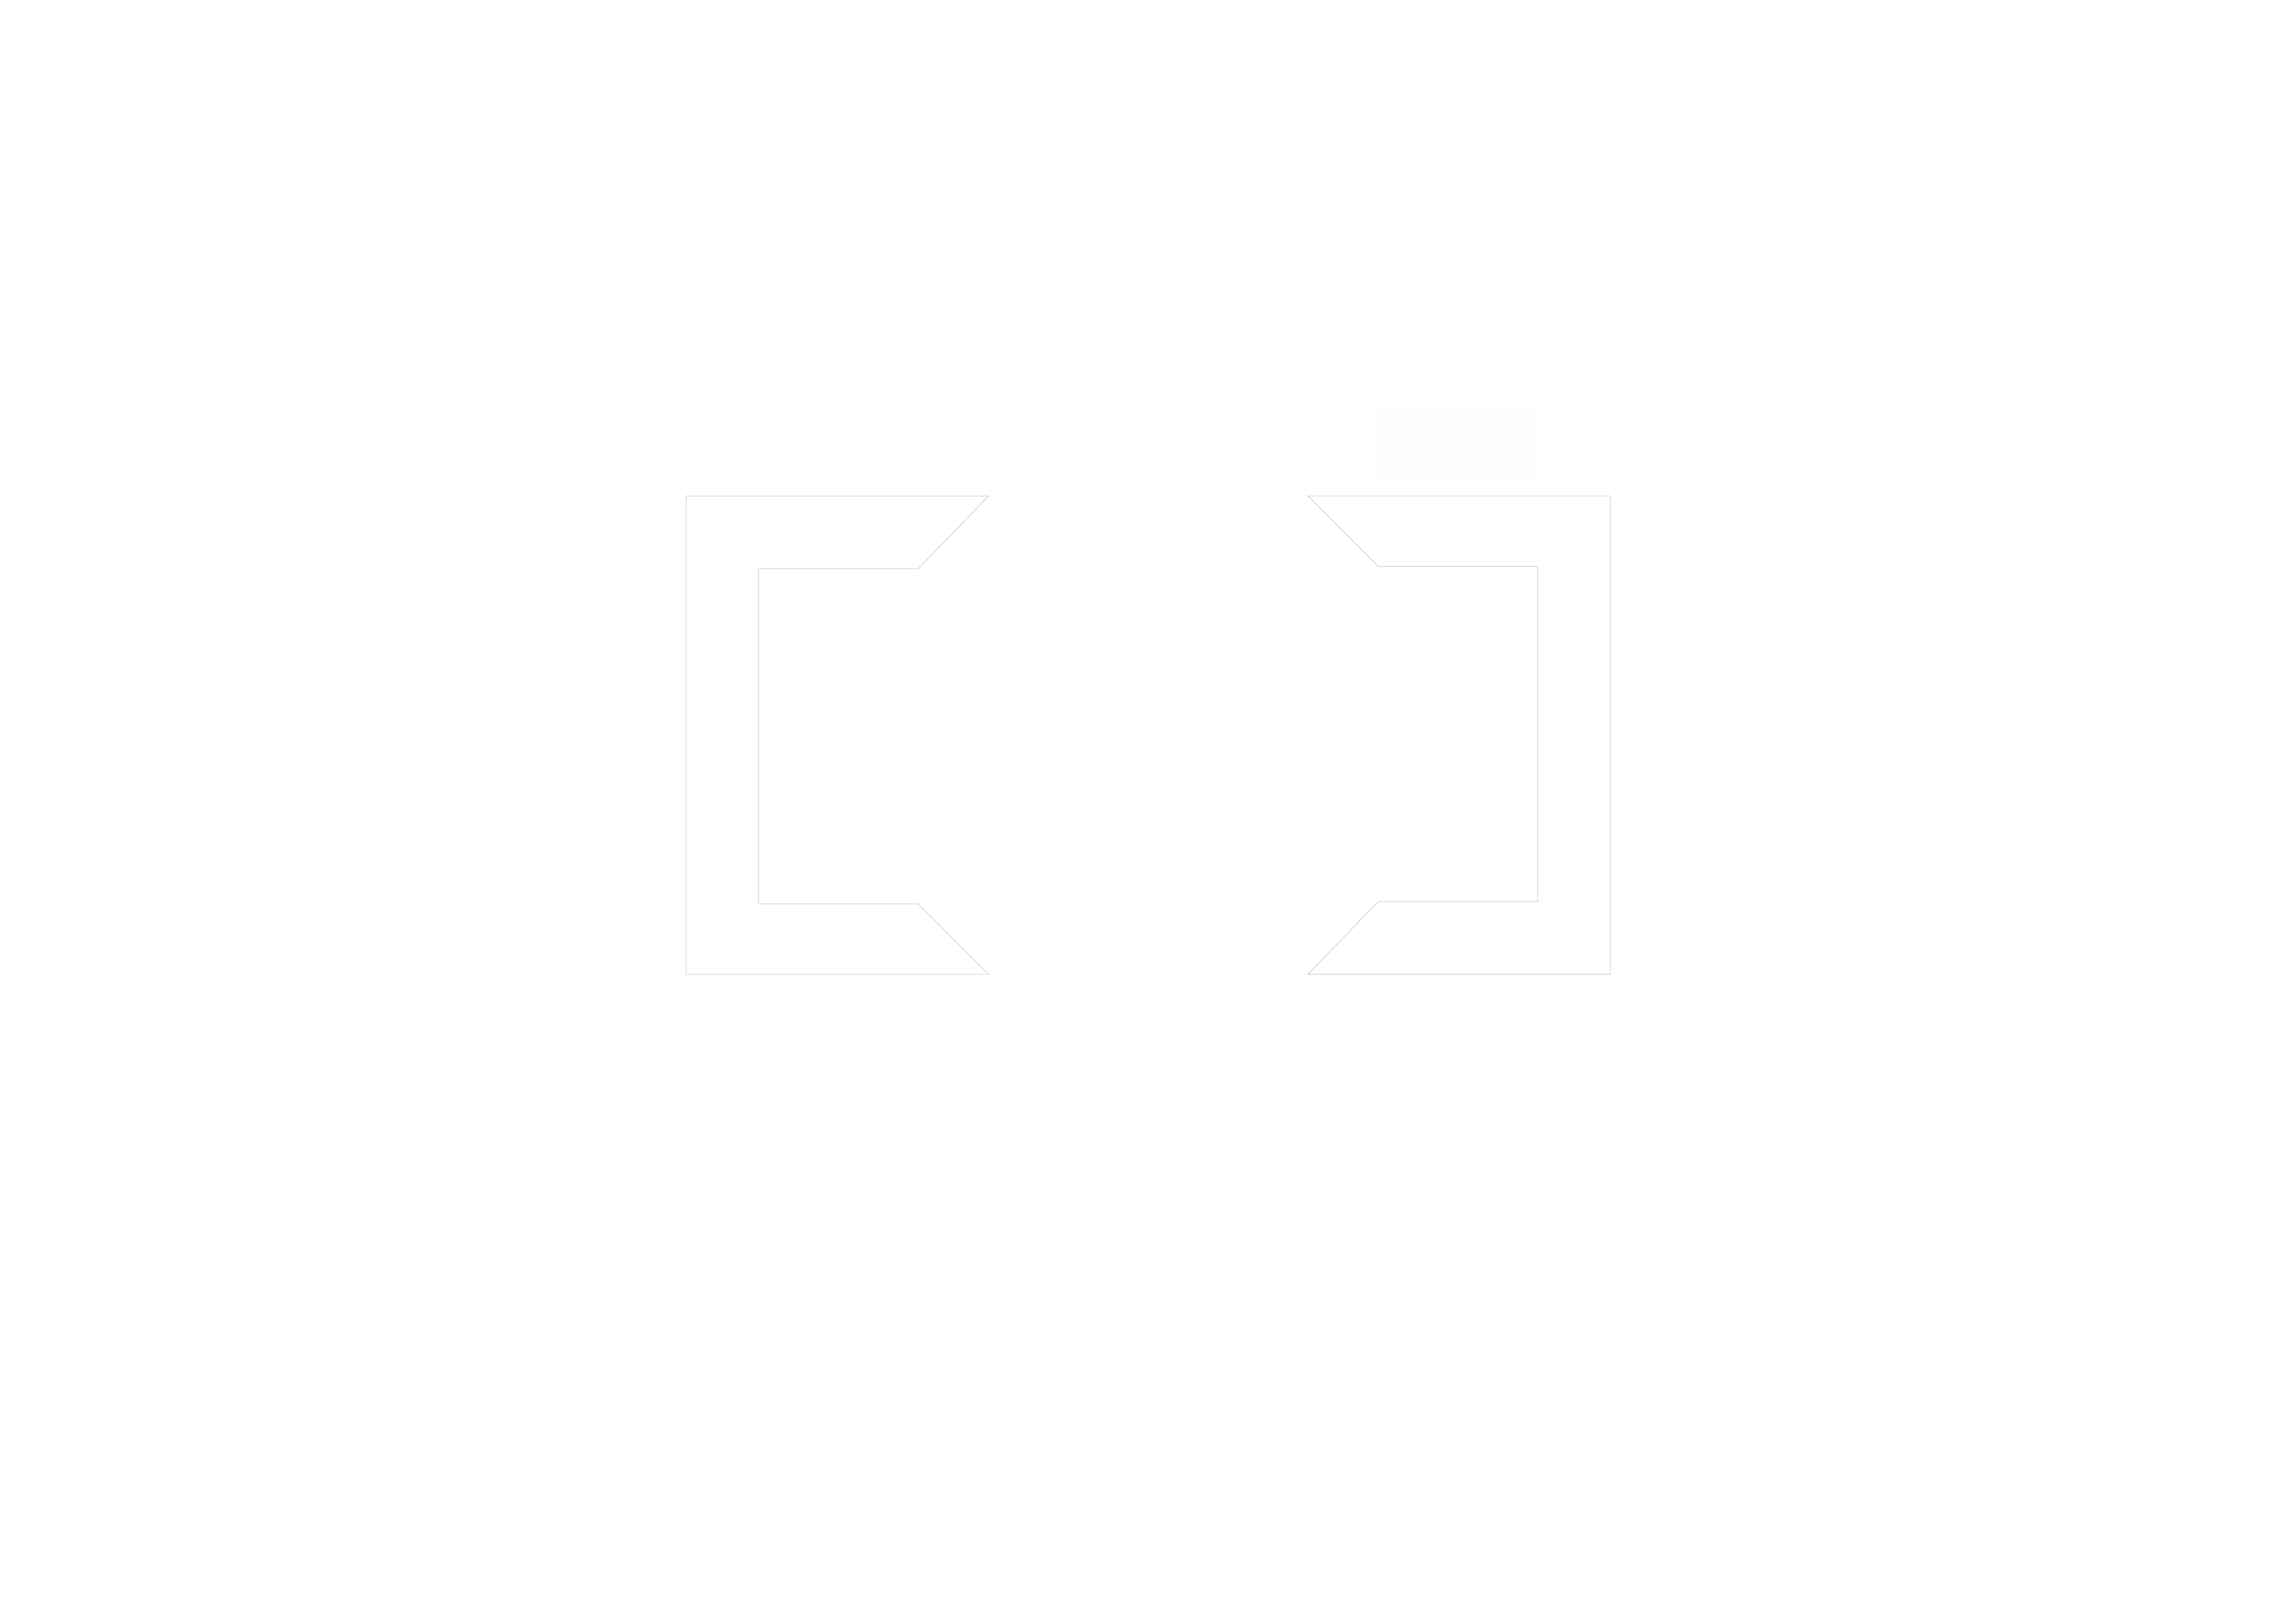 Tim Day Photography